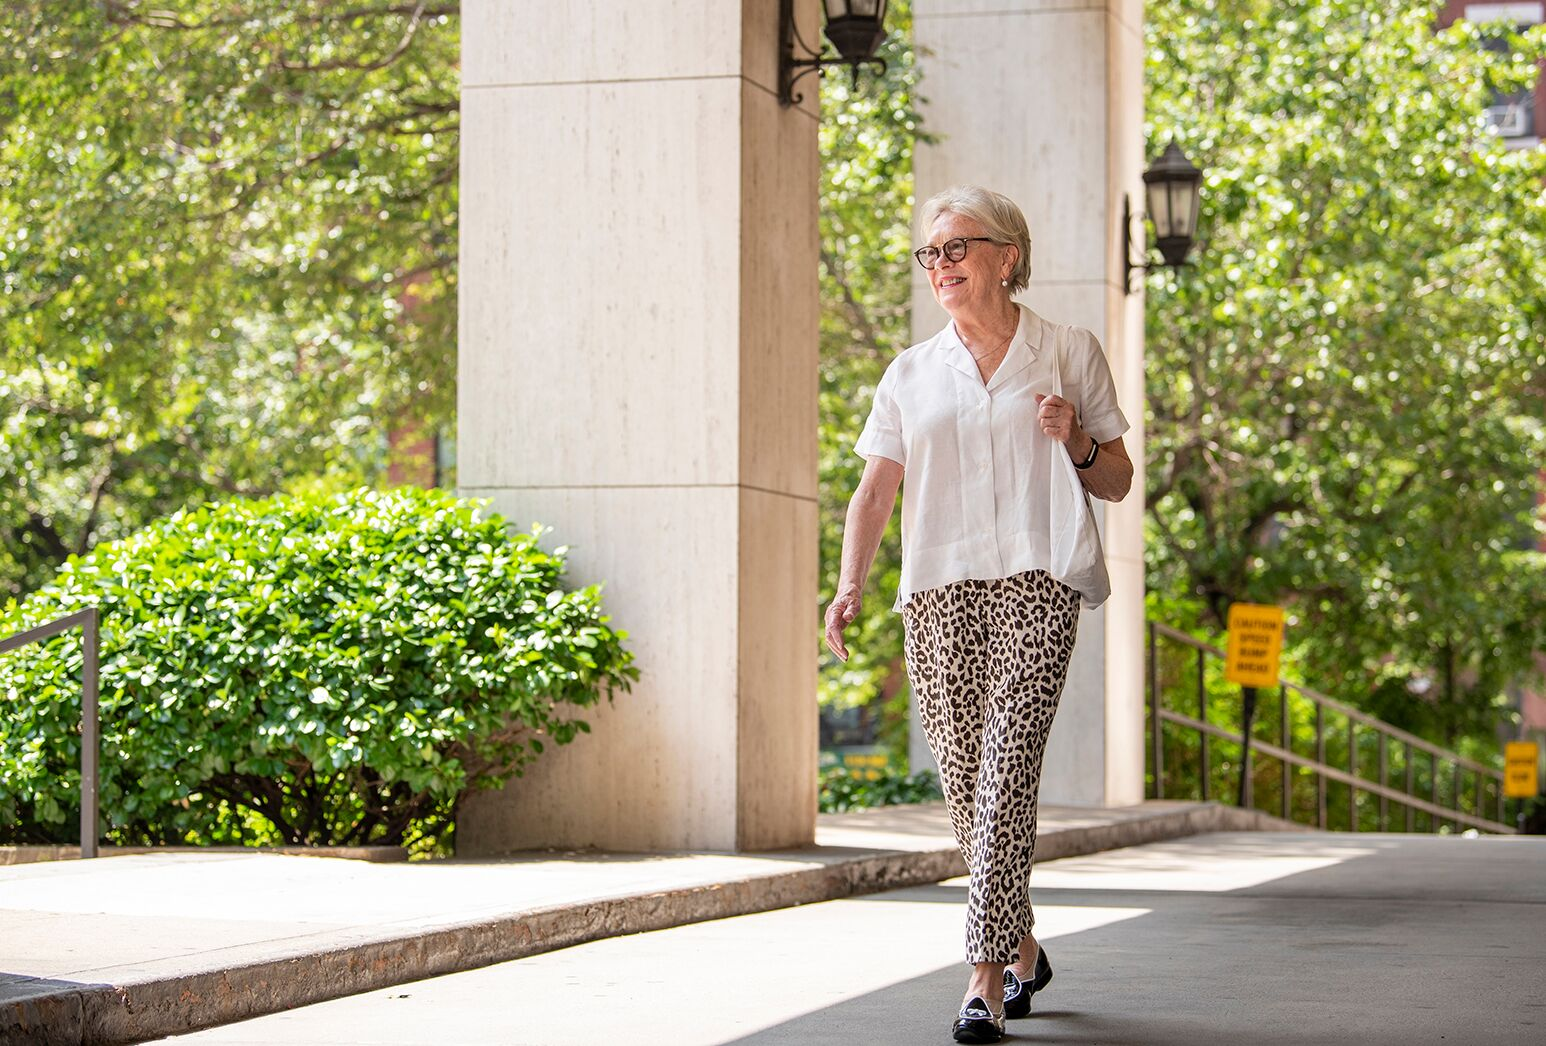 Woman in a white blouse and leopard print pants walking outside on a sunny day.